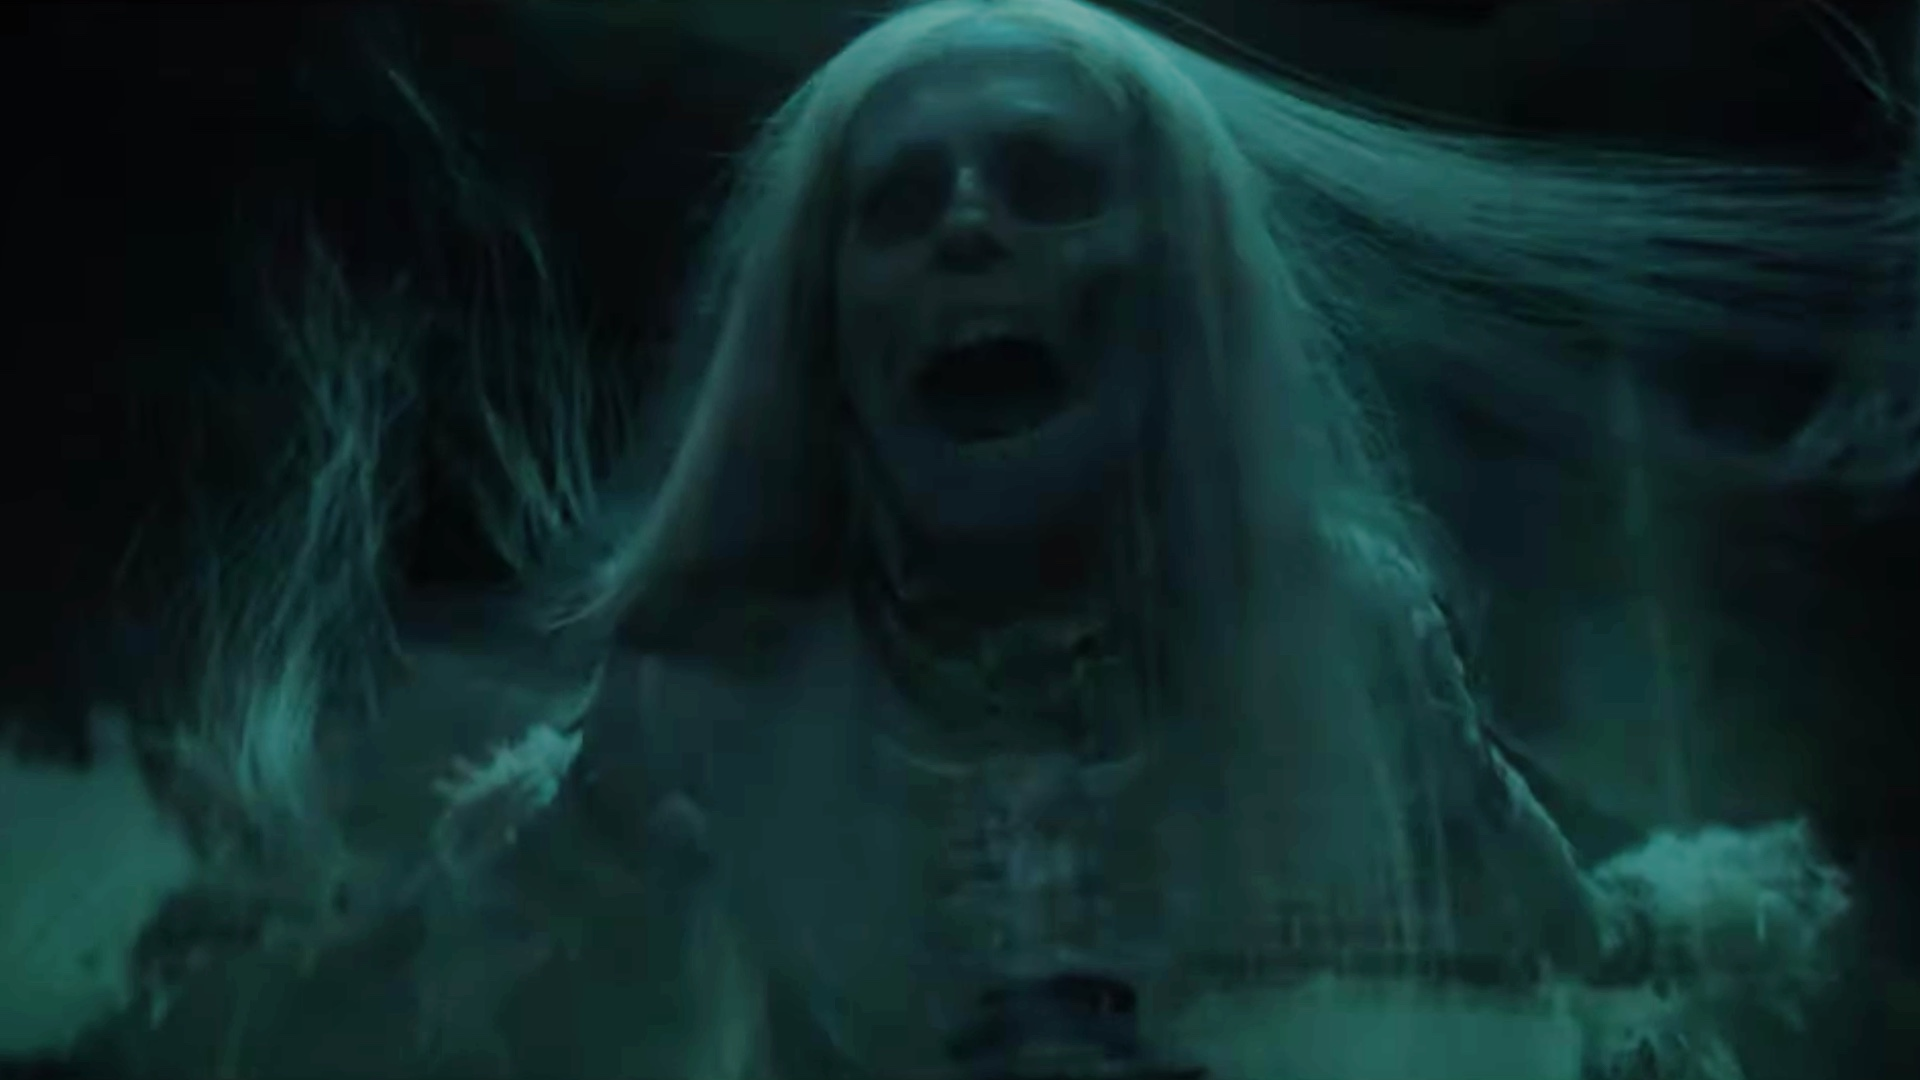 Creepy-Ass New Trailer For Guillermo del Toro's SCARY